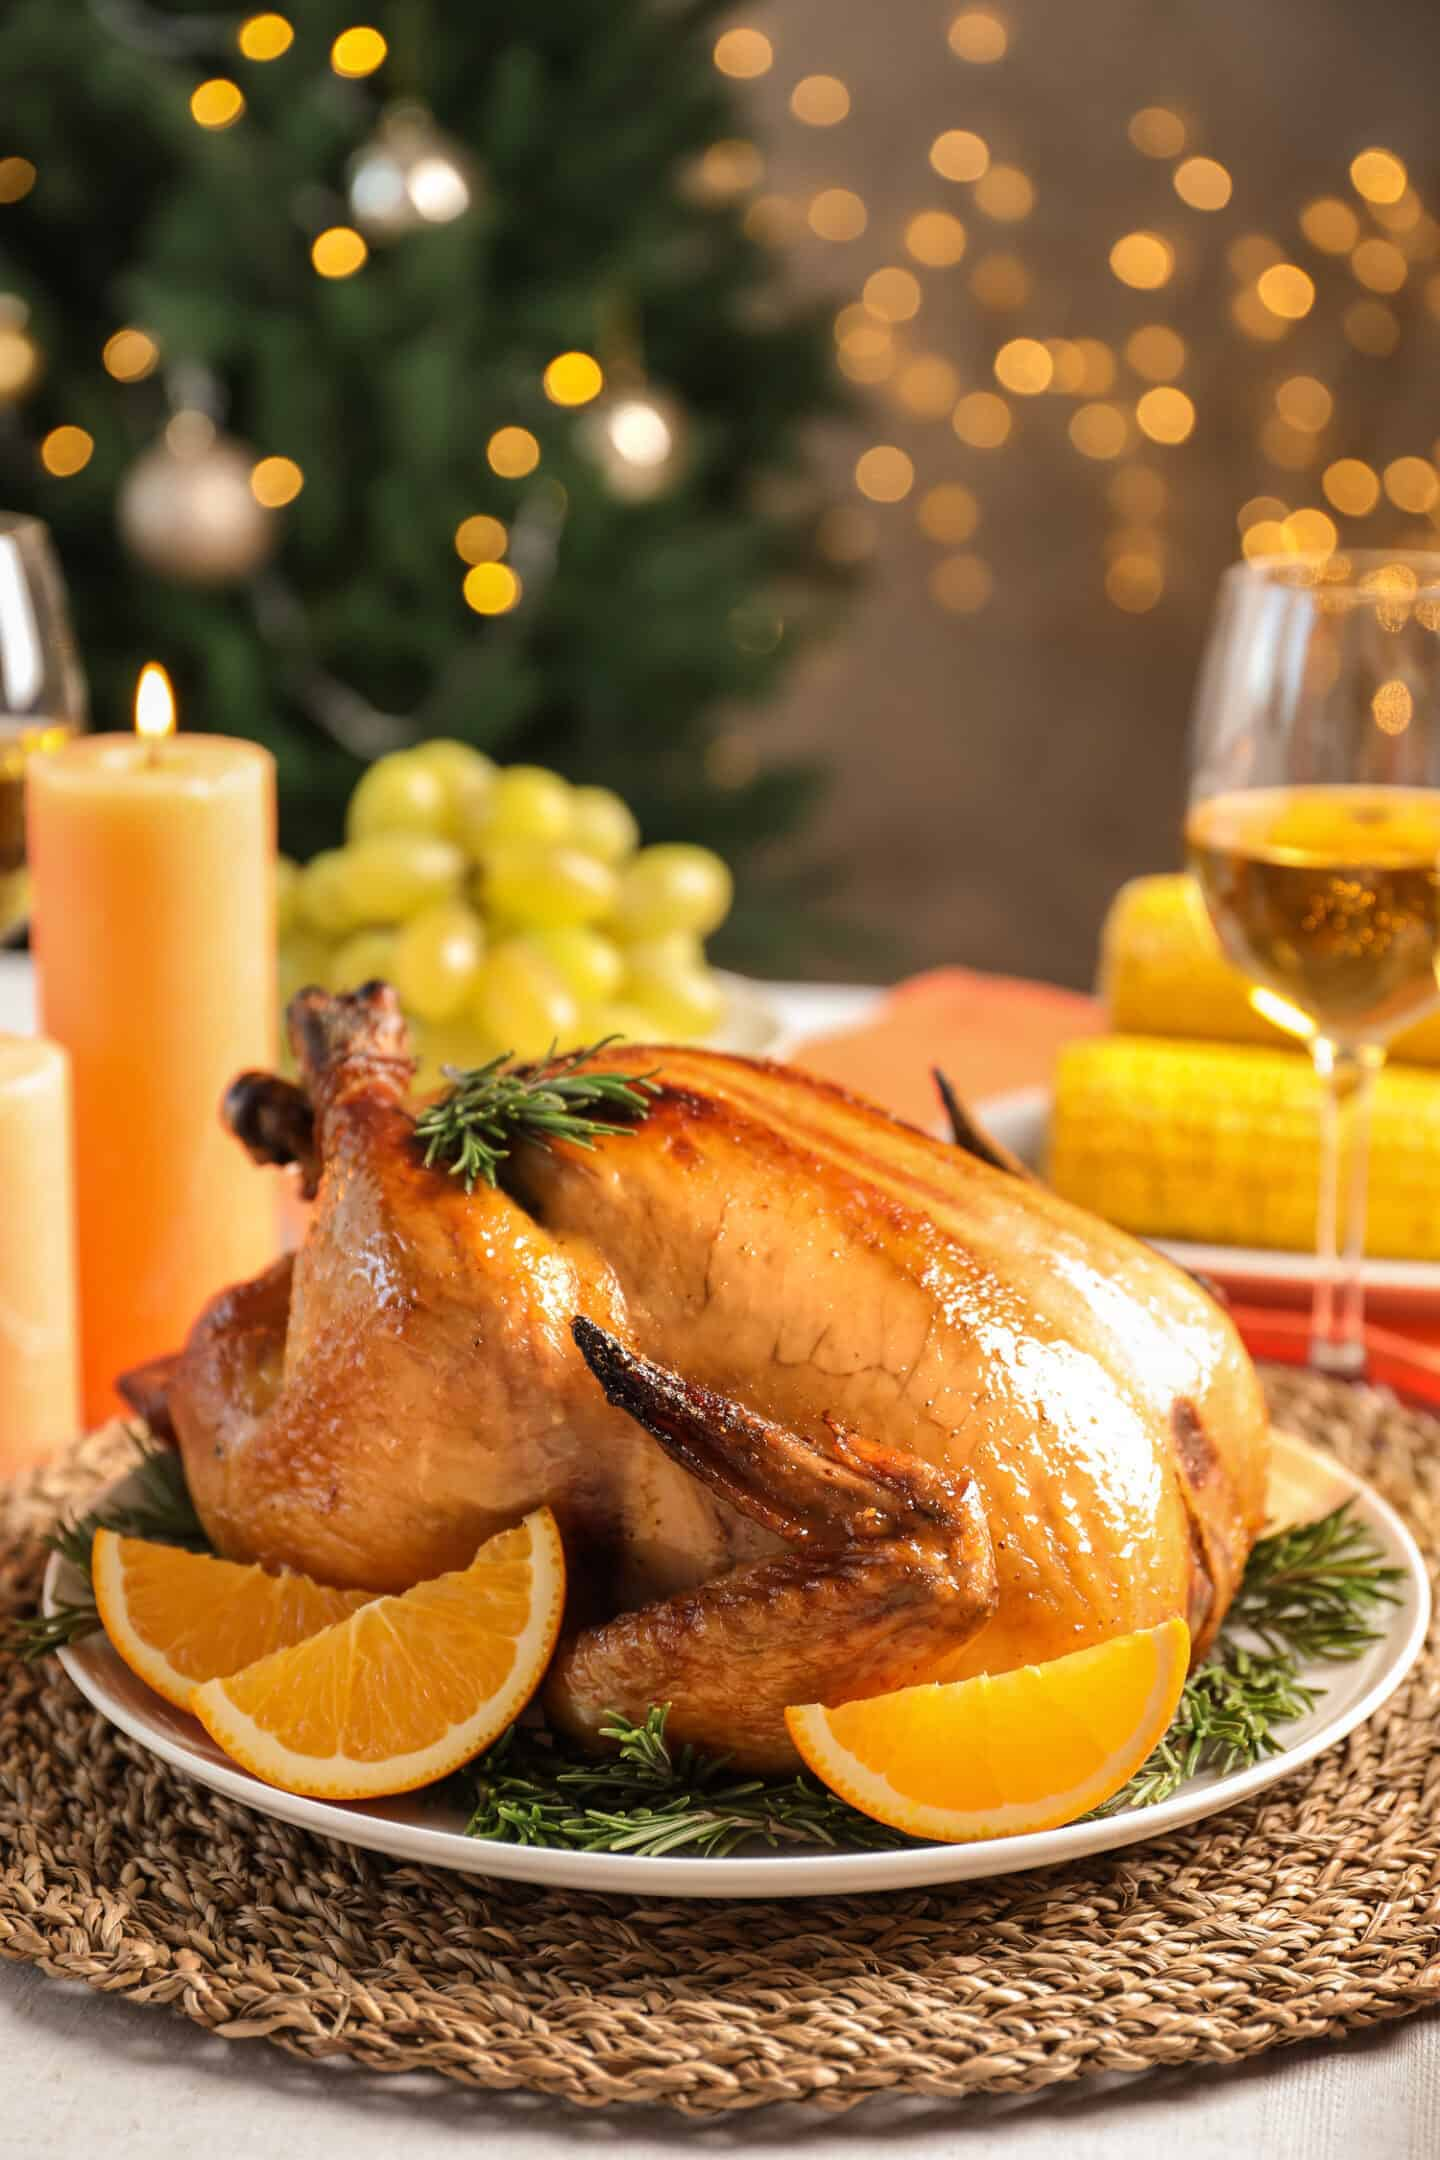 Delicious roasted turkey with garnish on dinner table